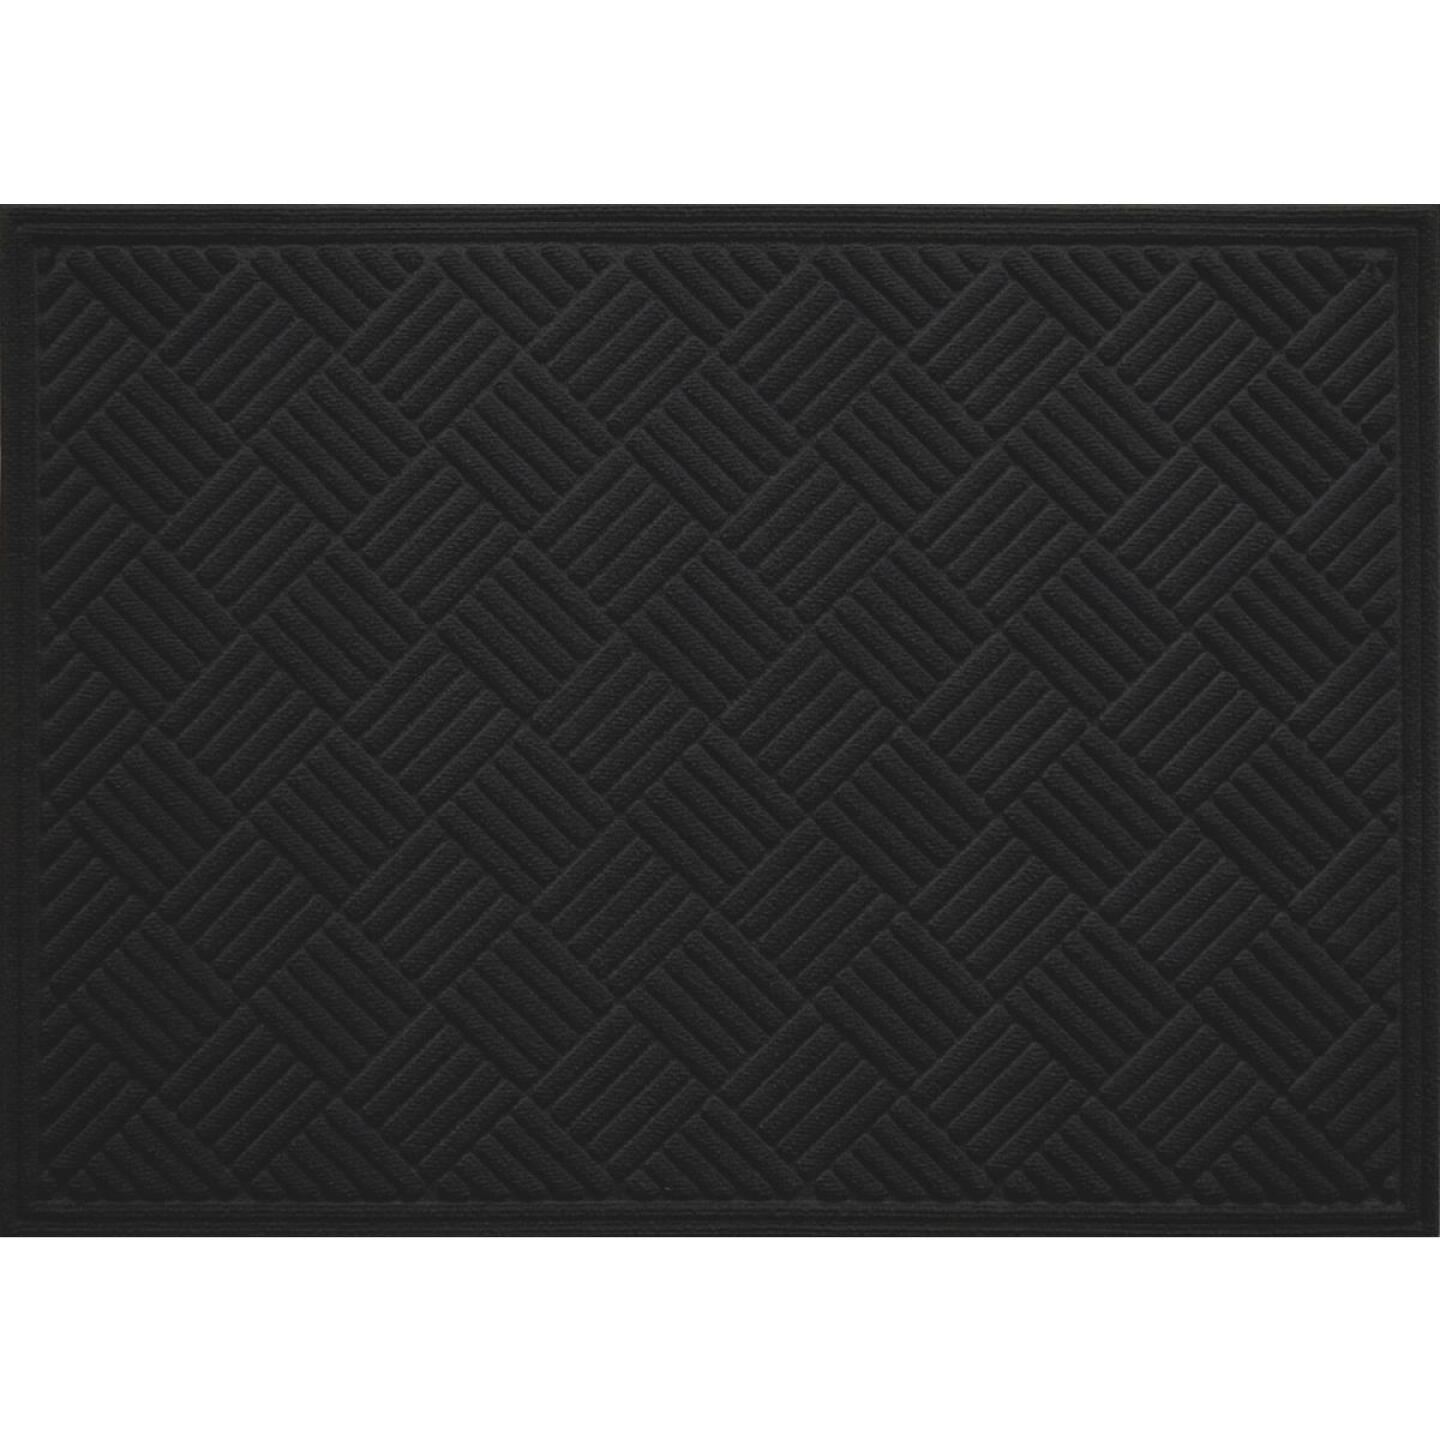 Multy Home Contours 3 Ft. x 4 Ft. Black Carpet Utility Floor Mat, Indoor/Outdoor Image 1